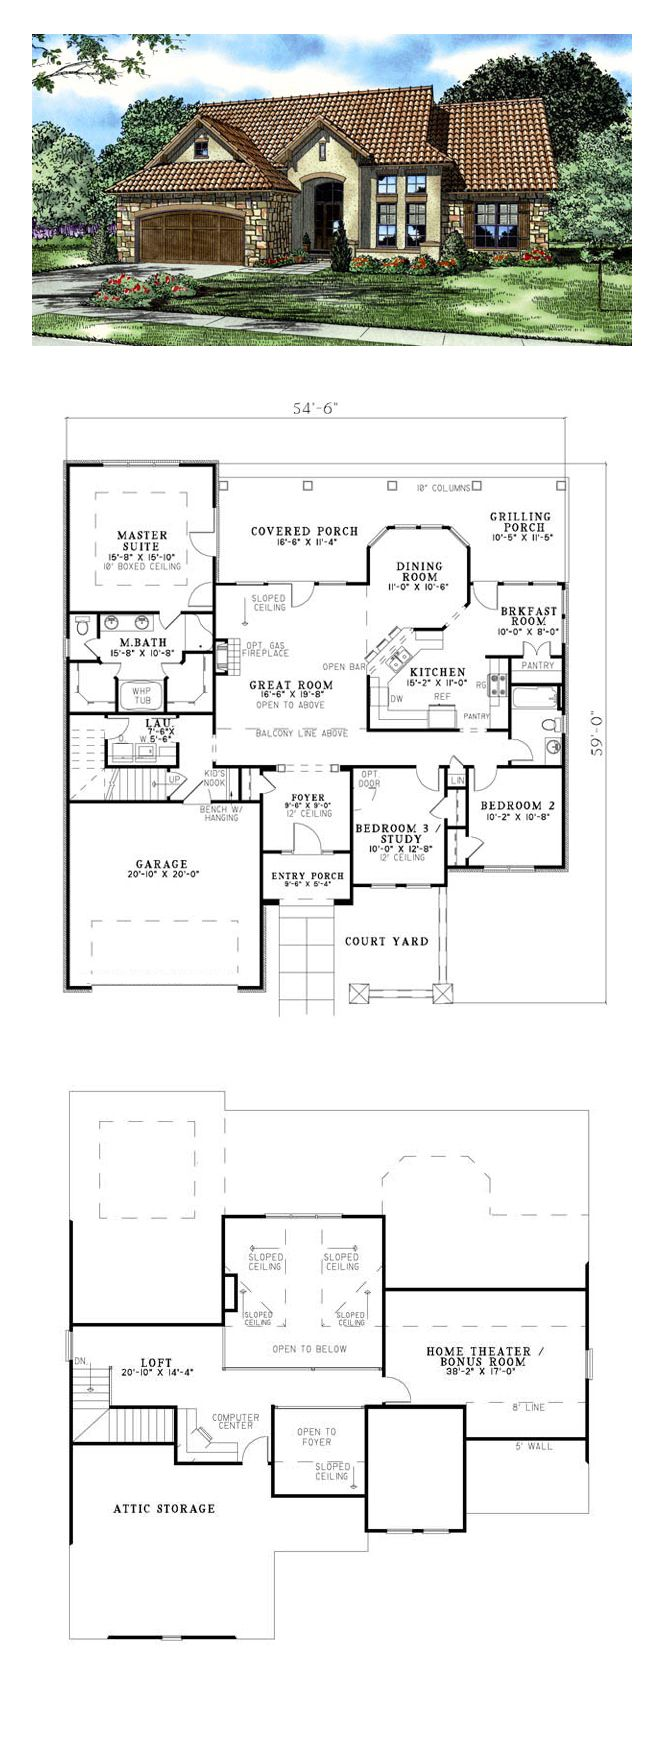 best 25 tuscan house plans ideas only on pinterest italian mediterranean tuscan house plan 82120